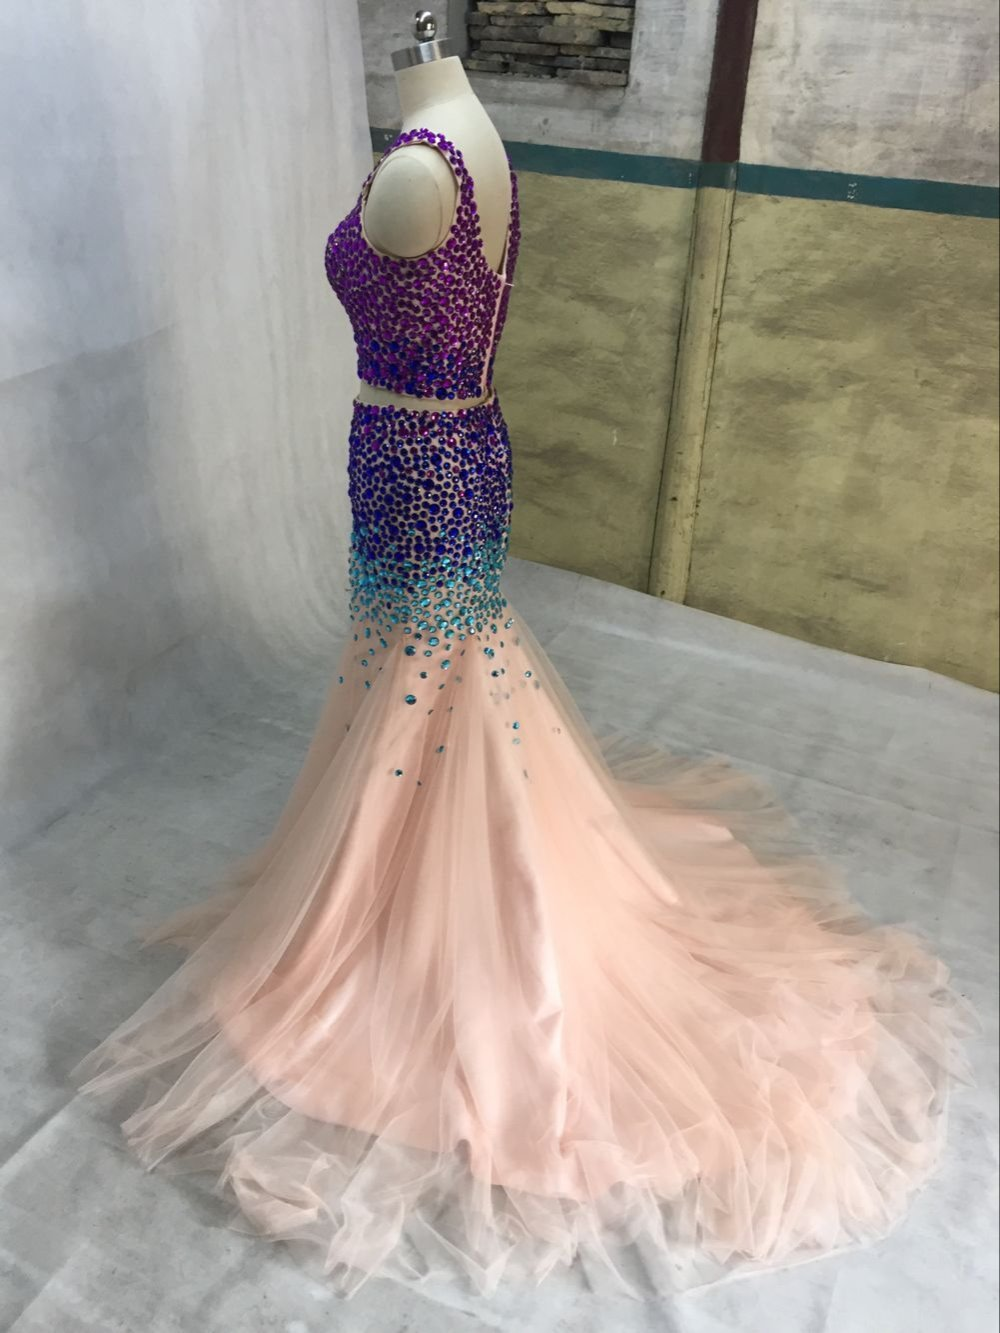 diamond mermaid prom dresses - photo #28